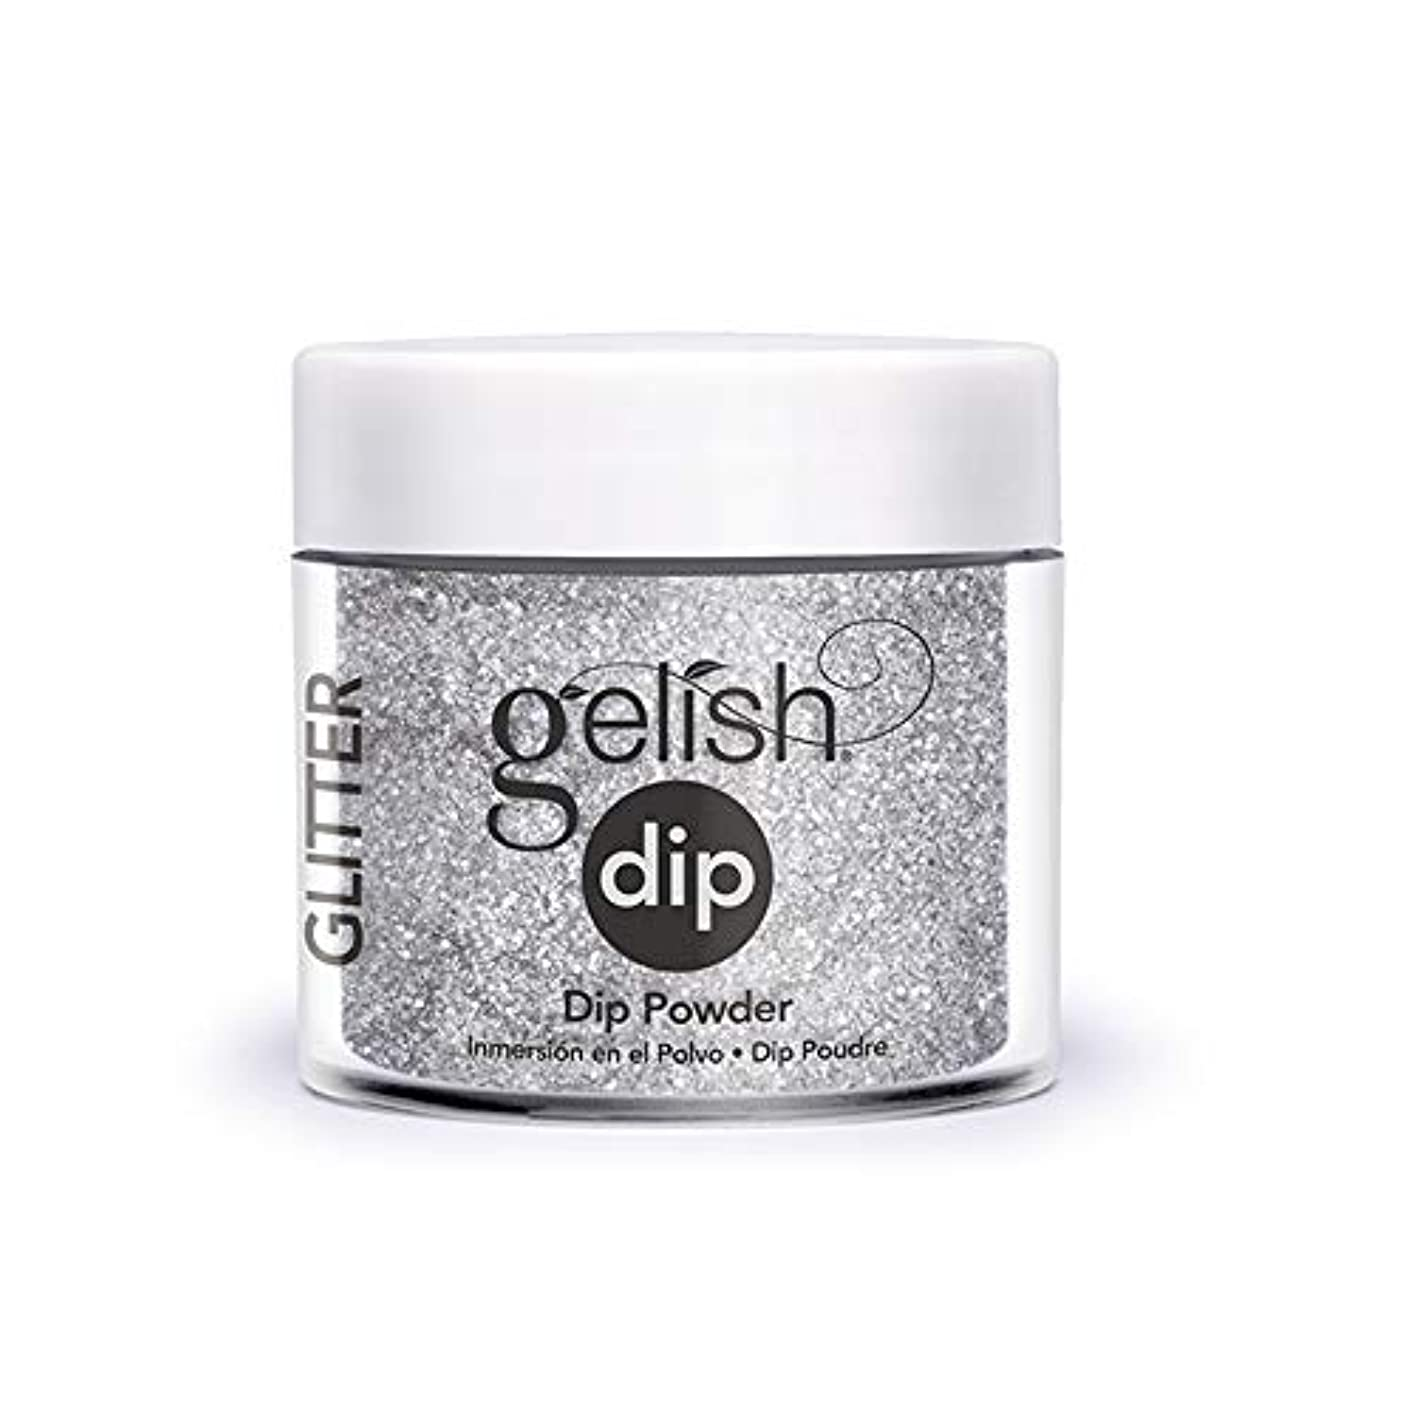 病気移植解凍する、雪解け、霜解けHarmony Gelish - Acrylic Dip Powder - Time to Shine - 23g / 0.8oz